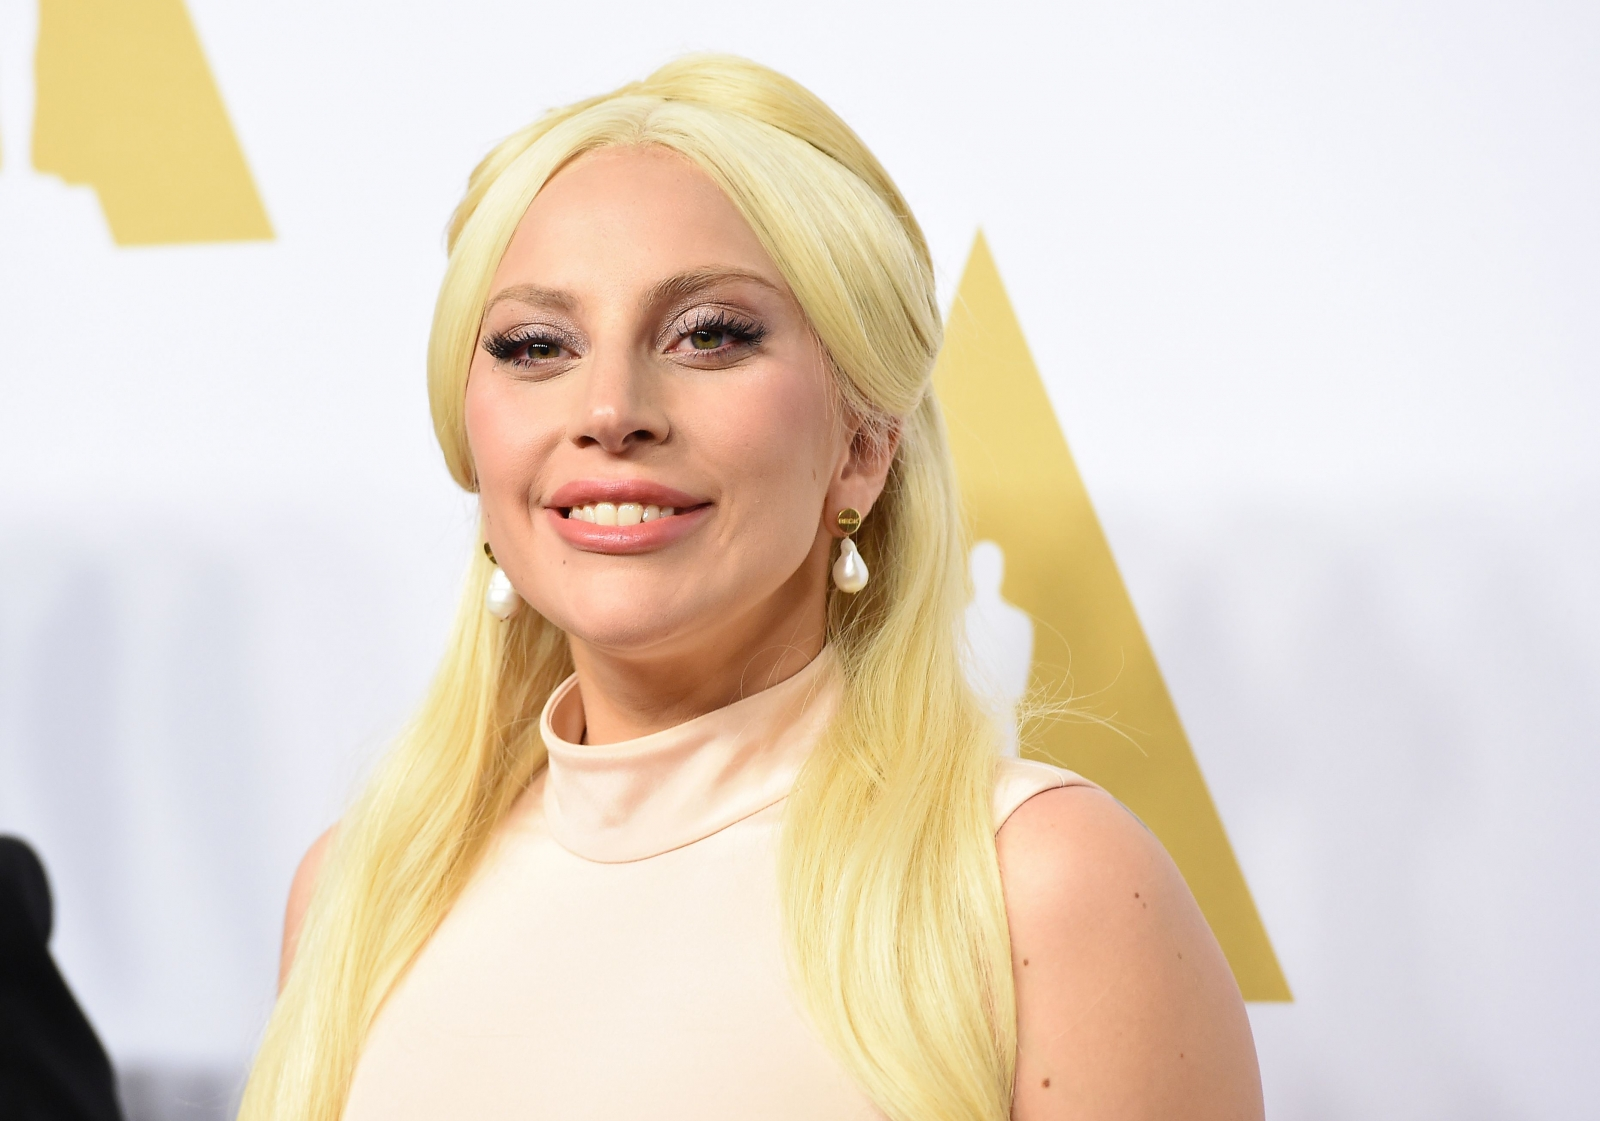 MTV VMAs 2016: Lady Gaga to perform new single Chaos Angel? Lady Gaga